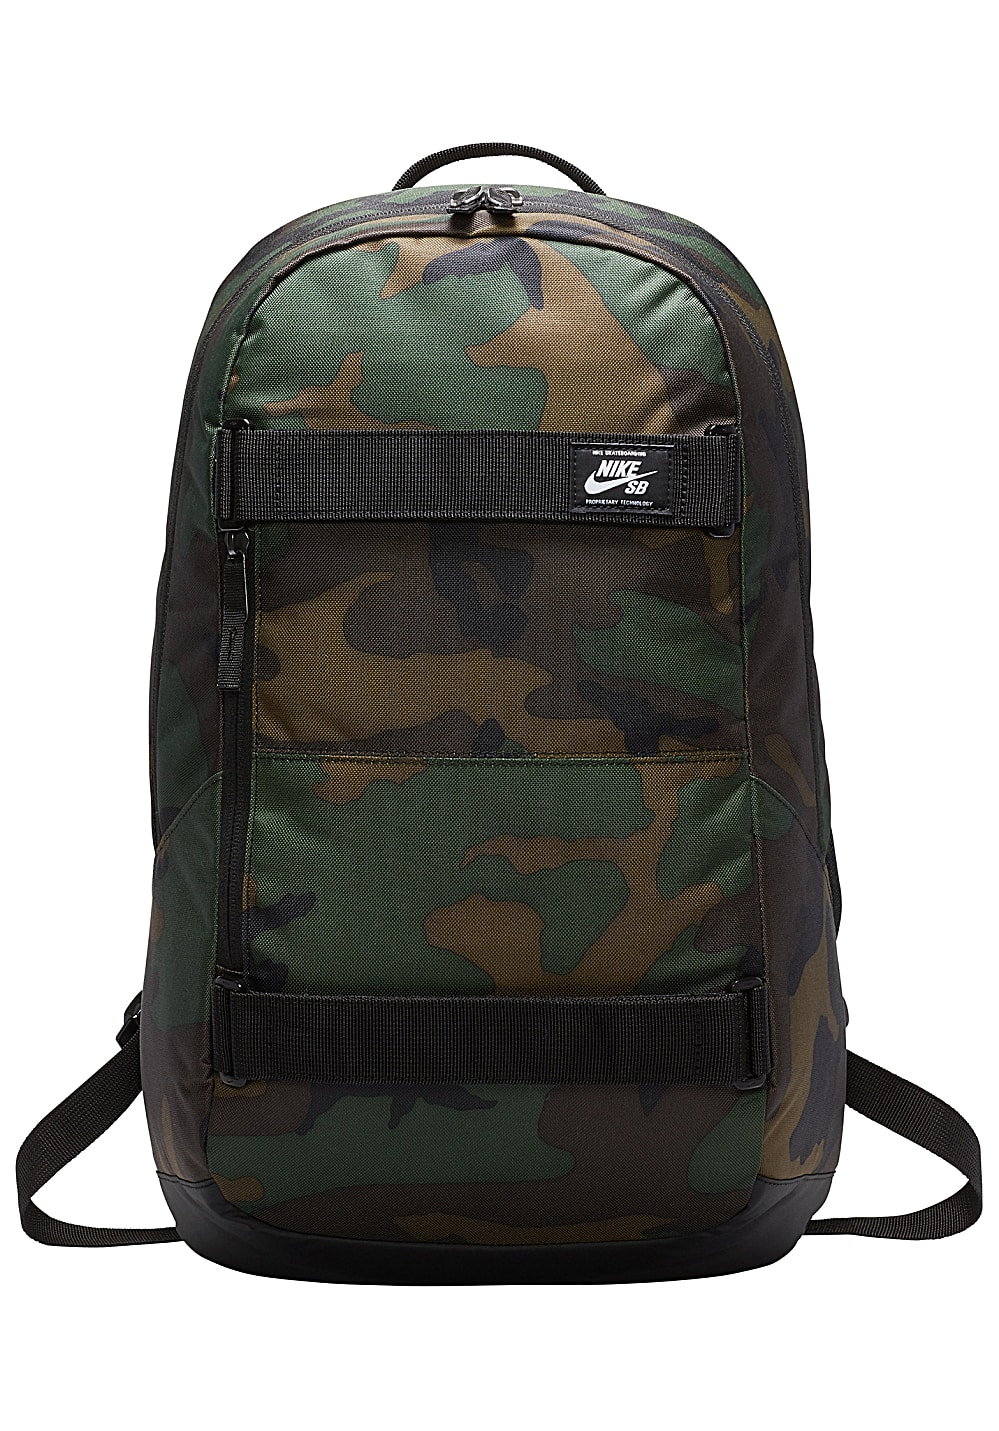 48265a919468 NIKE SB Courthouse 24L Rucksack - Camouflage